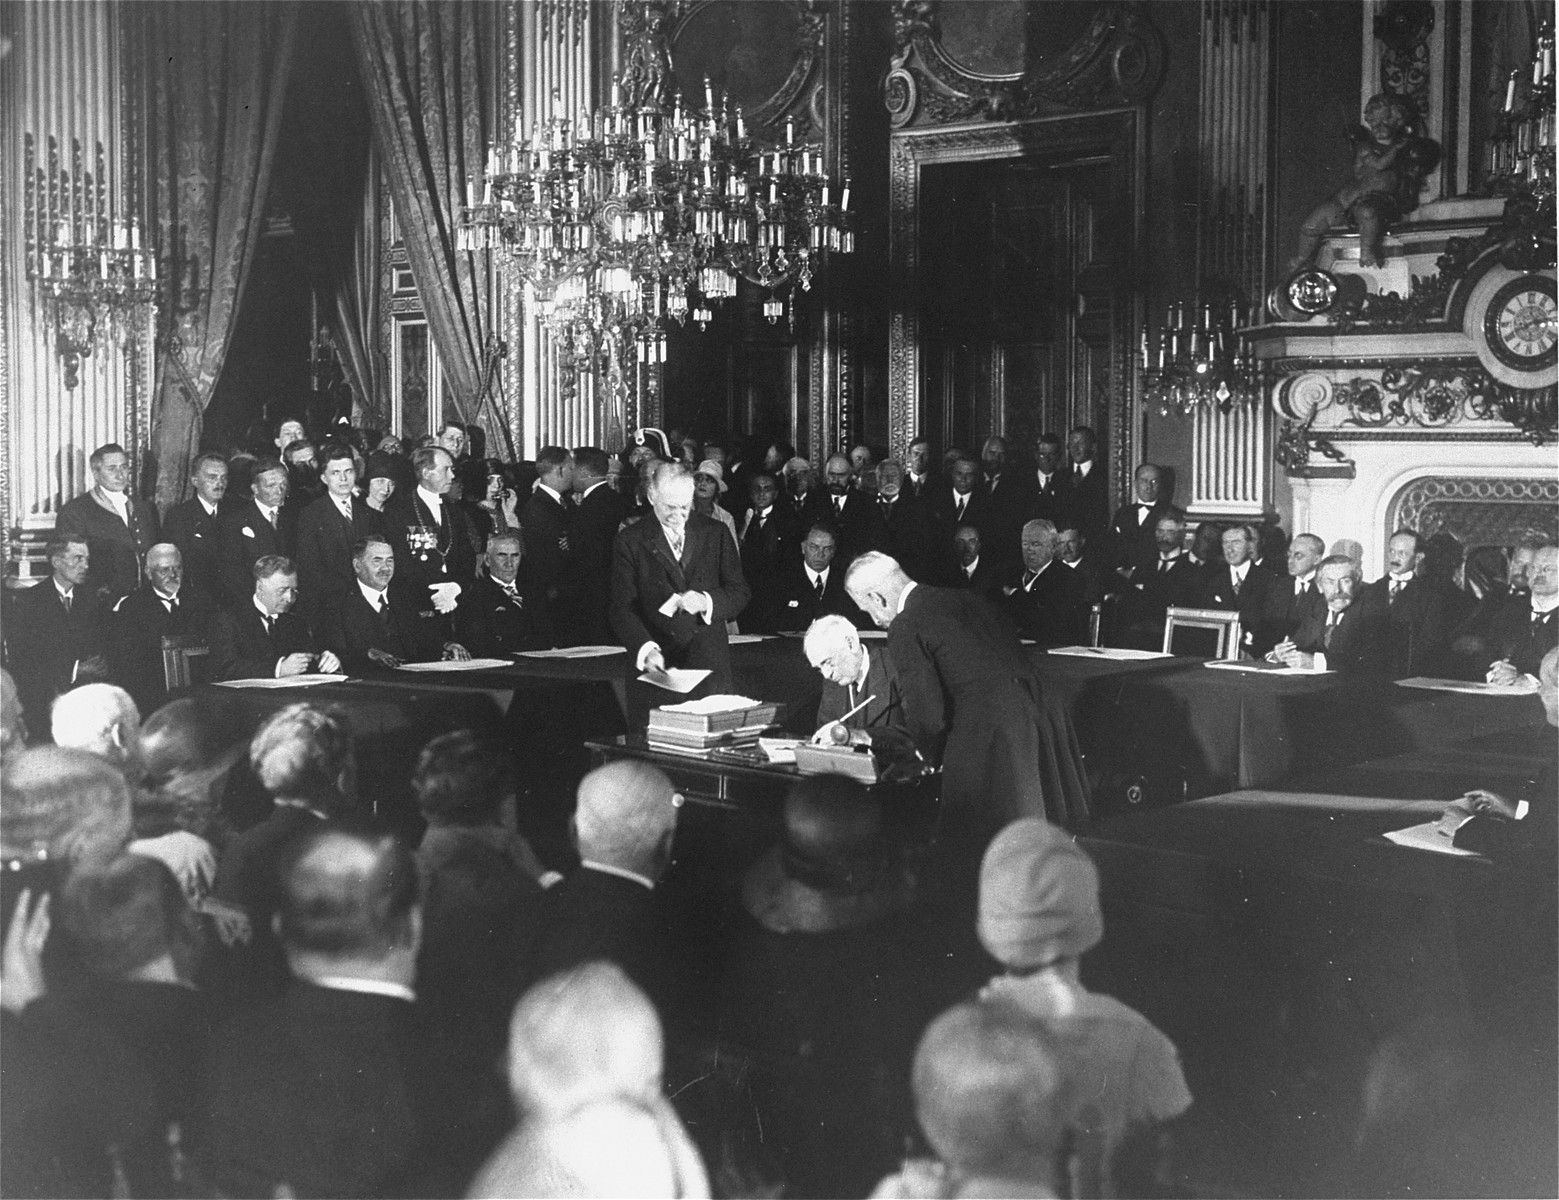 The signing of the Kellogg-Briand Pact by representatives of Germany, the United States, Belgium, France, Great Britain, Italy, Japan, Poland and the Czechoslovak Republic.  The Pact outlawed war as an instrument of national policy.